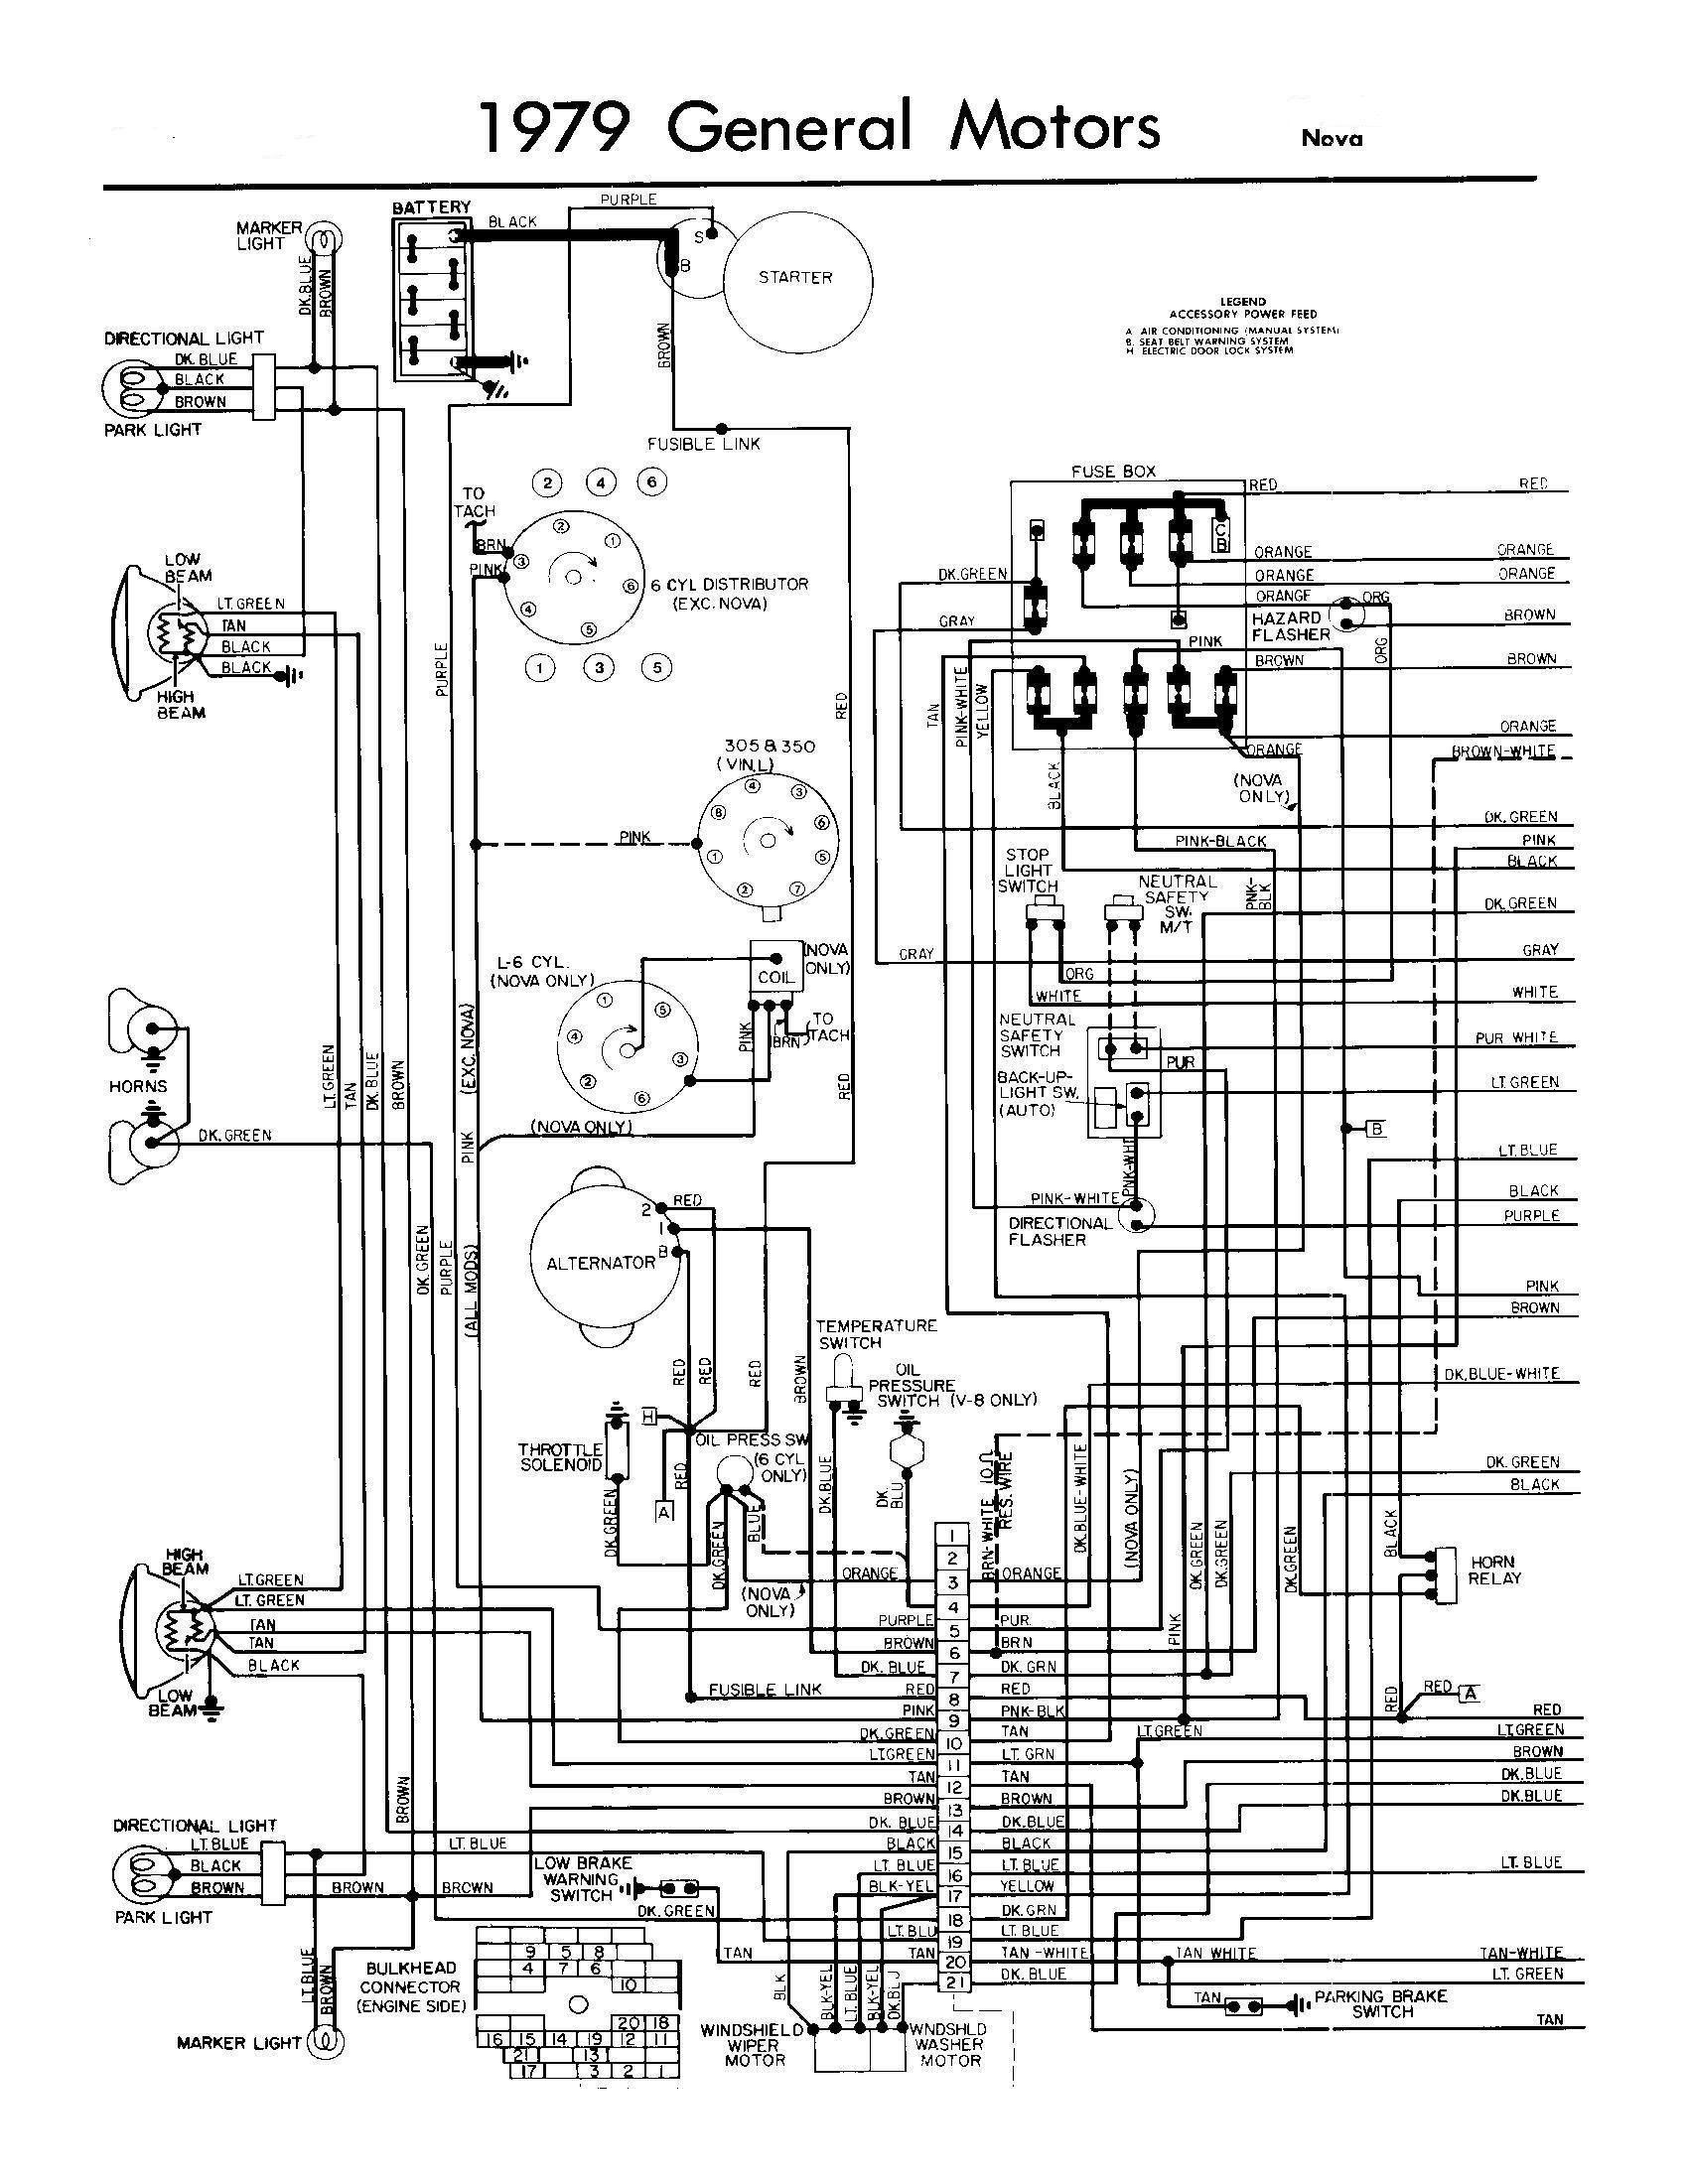 [SODI_2457]   ☑ 2013 Bobcat T190 Wiring Diagram HD Quality ☑ arrow-diagram.lesflaneurs.it | 2013 Bobcat T190 Wiring Diagram |  | Diagram Database